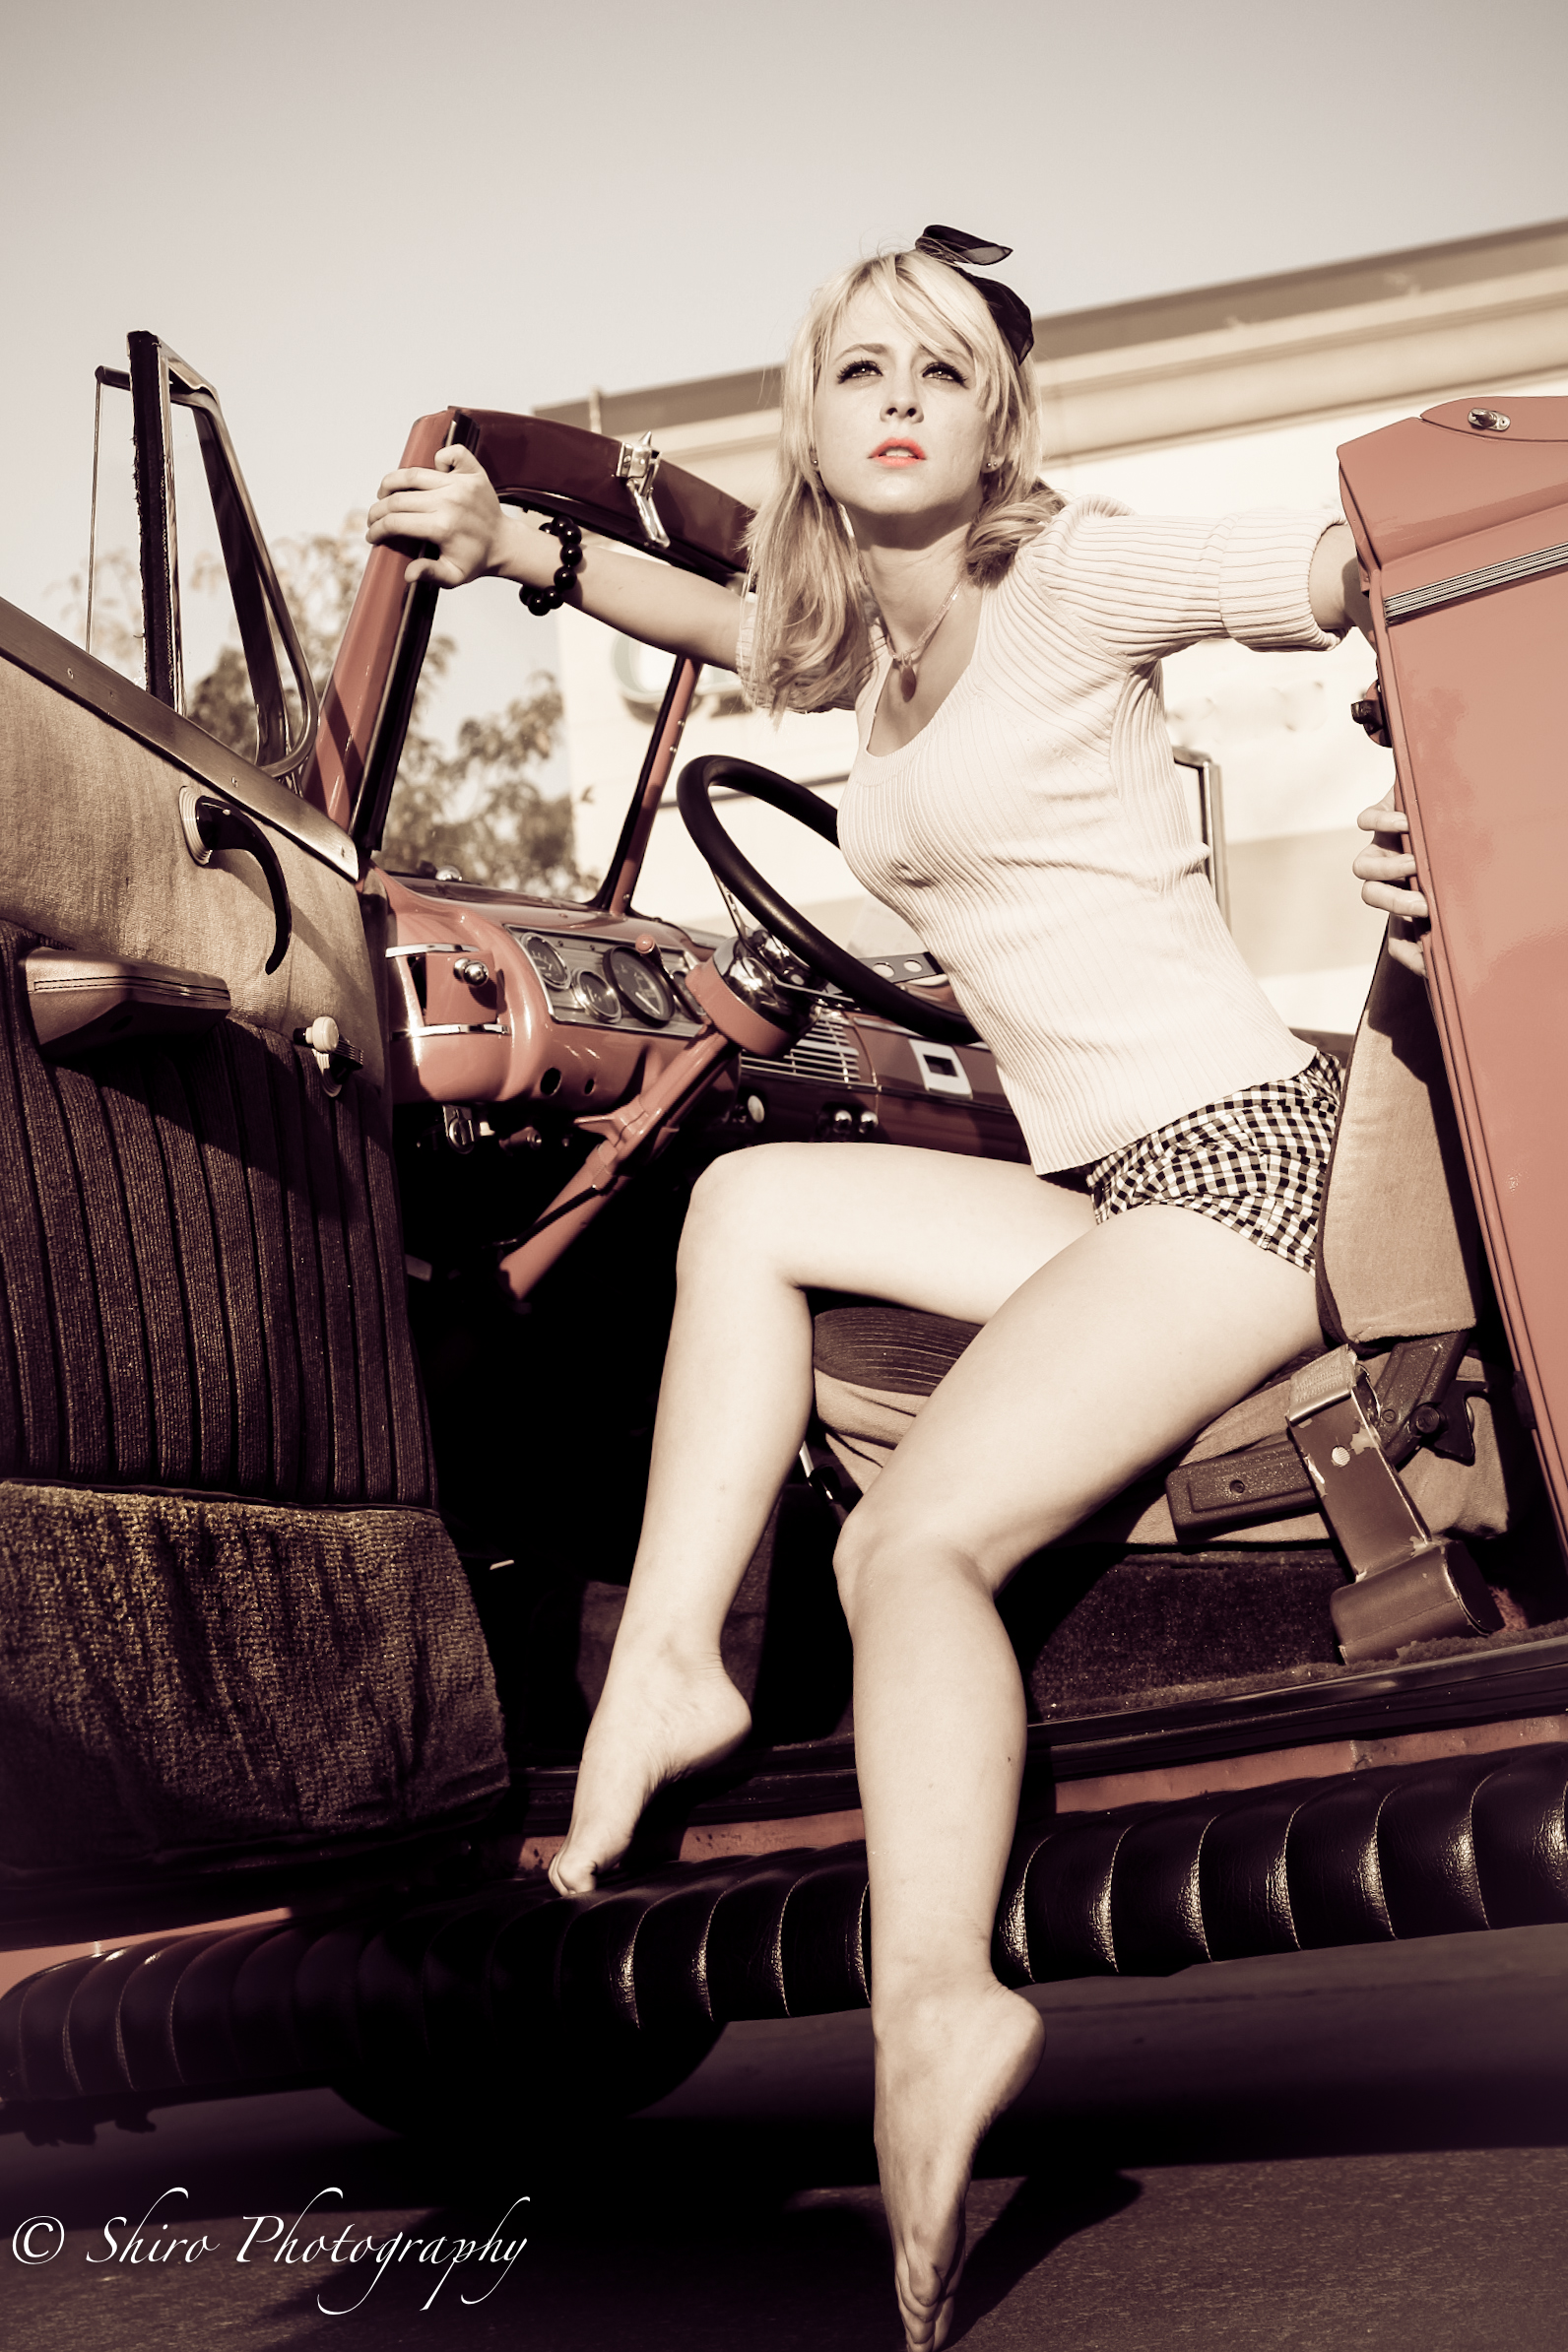 Hot Girls Vintage Cars Photo Shoot